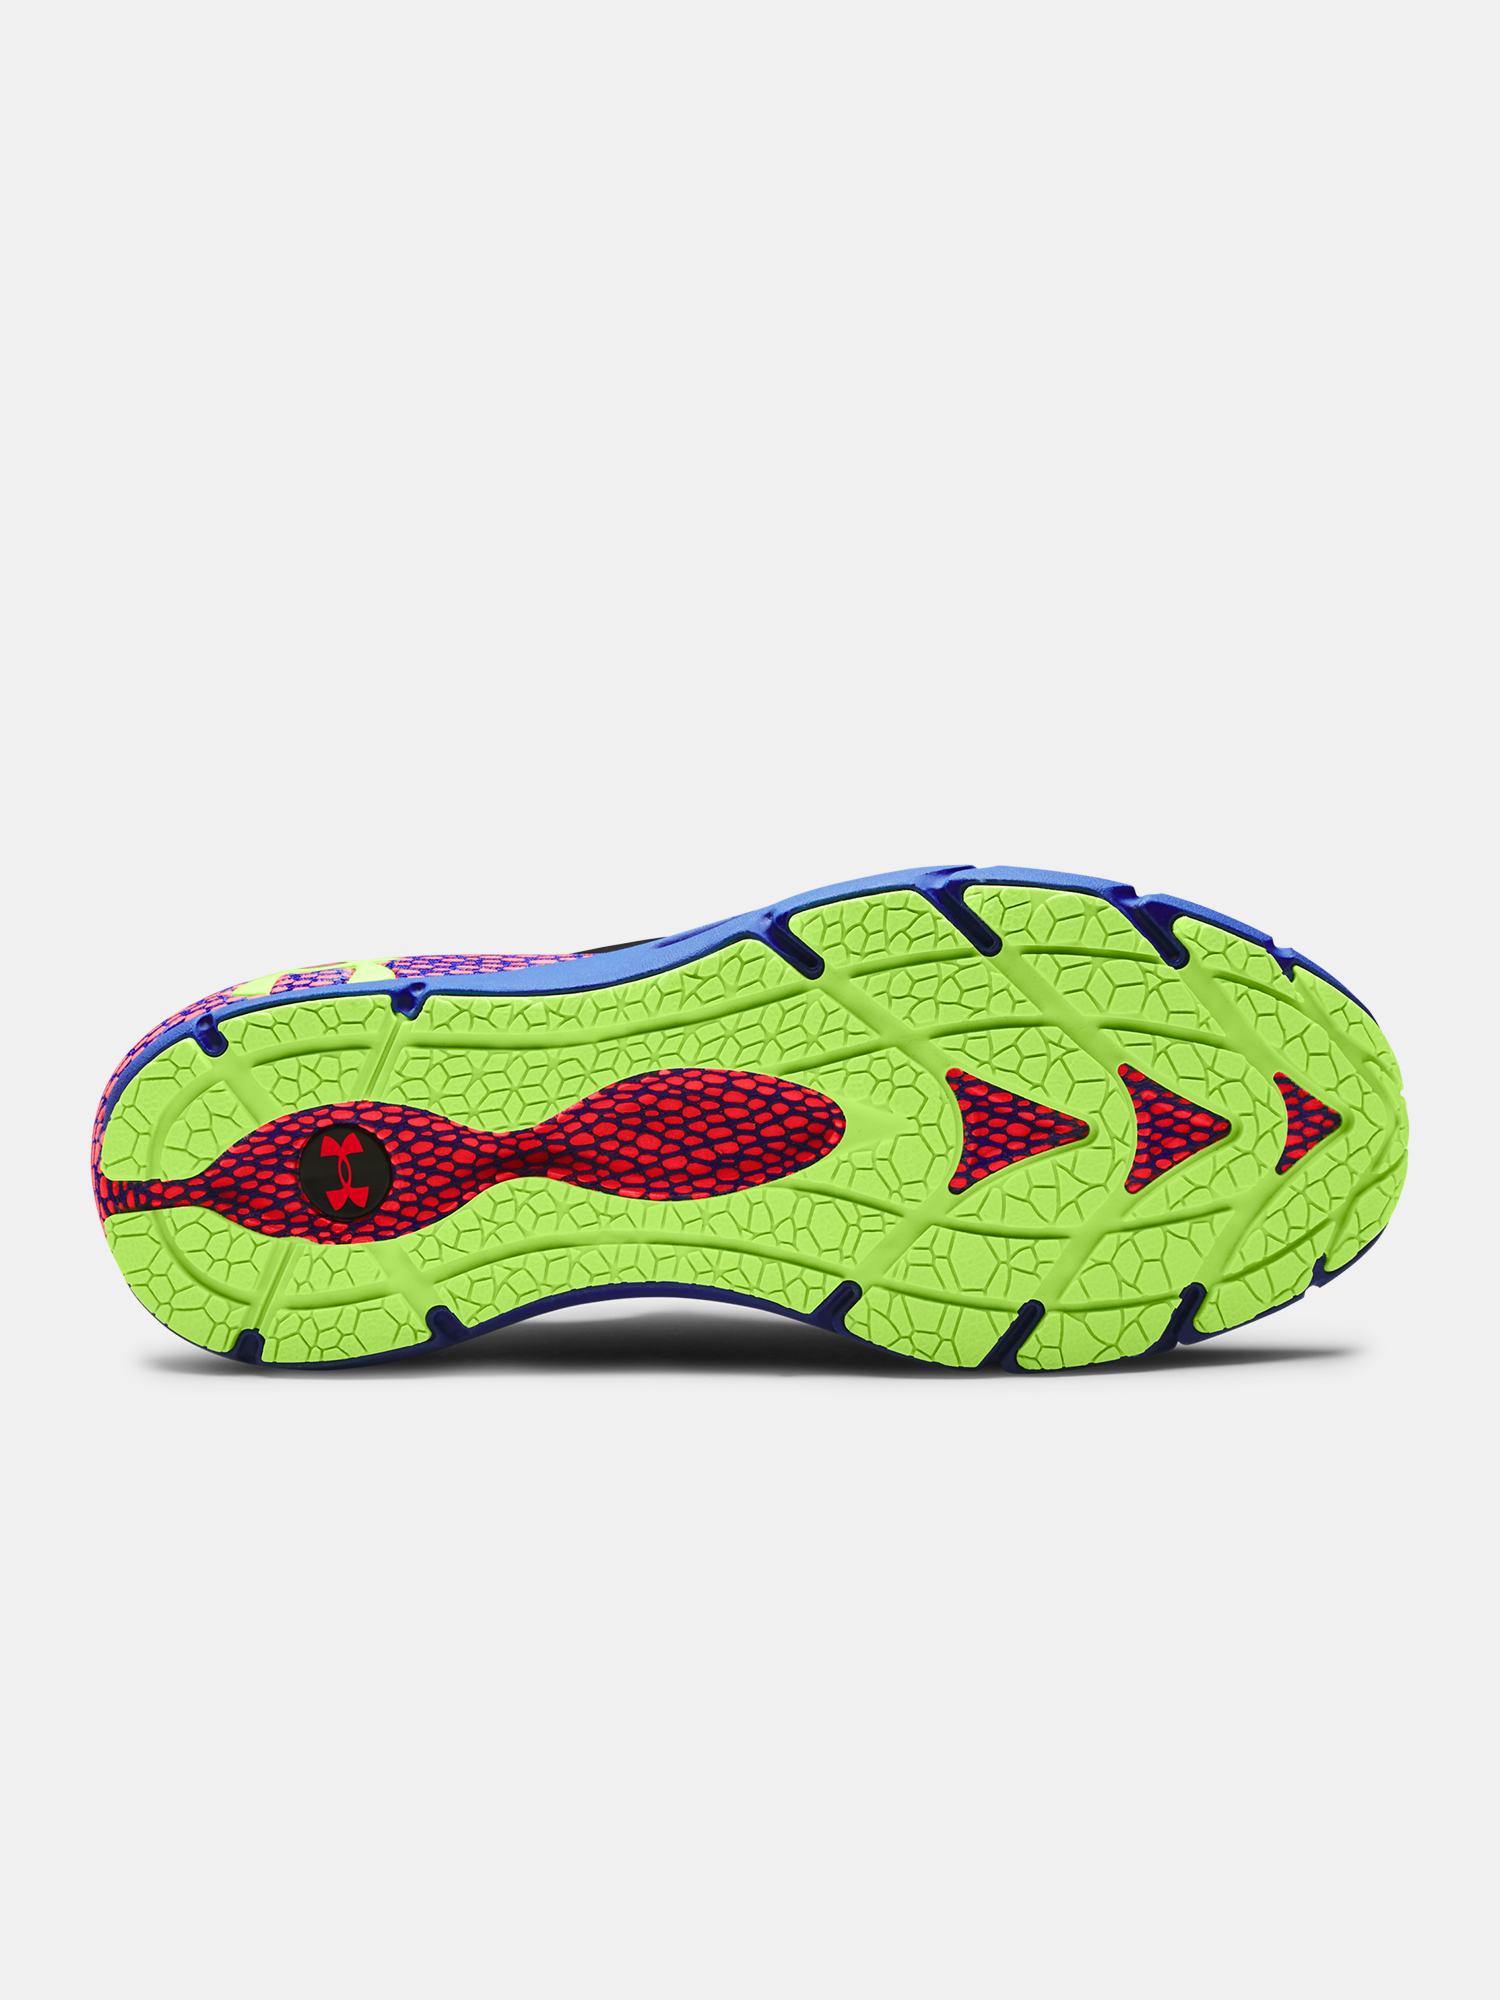 Boty Under Armour HOVR Phantom 2 Glow-BLK (4)